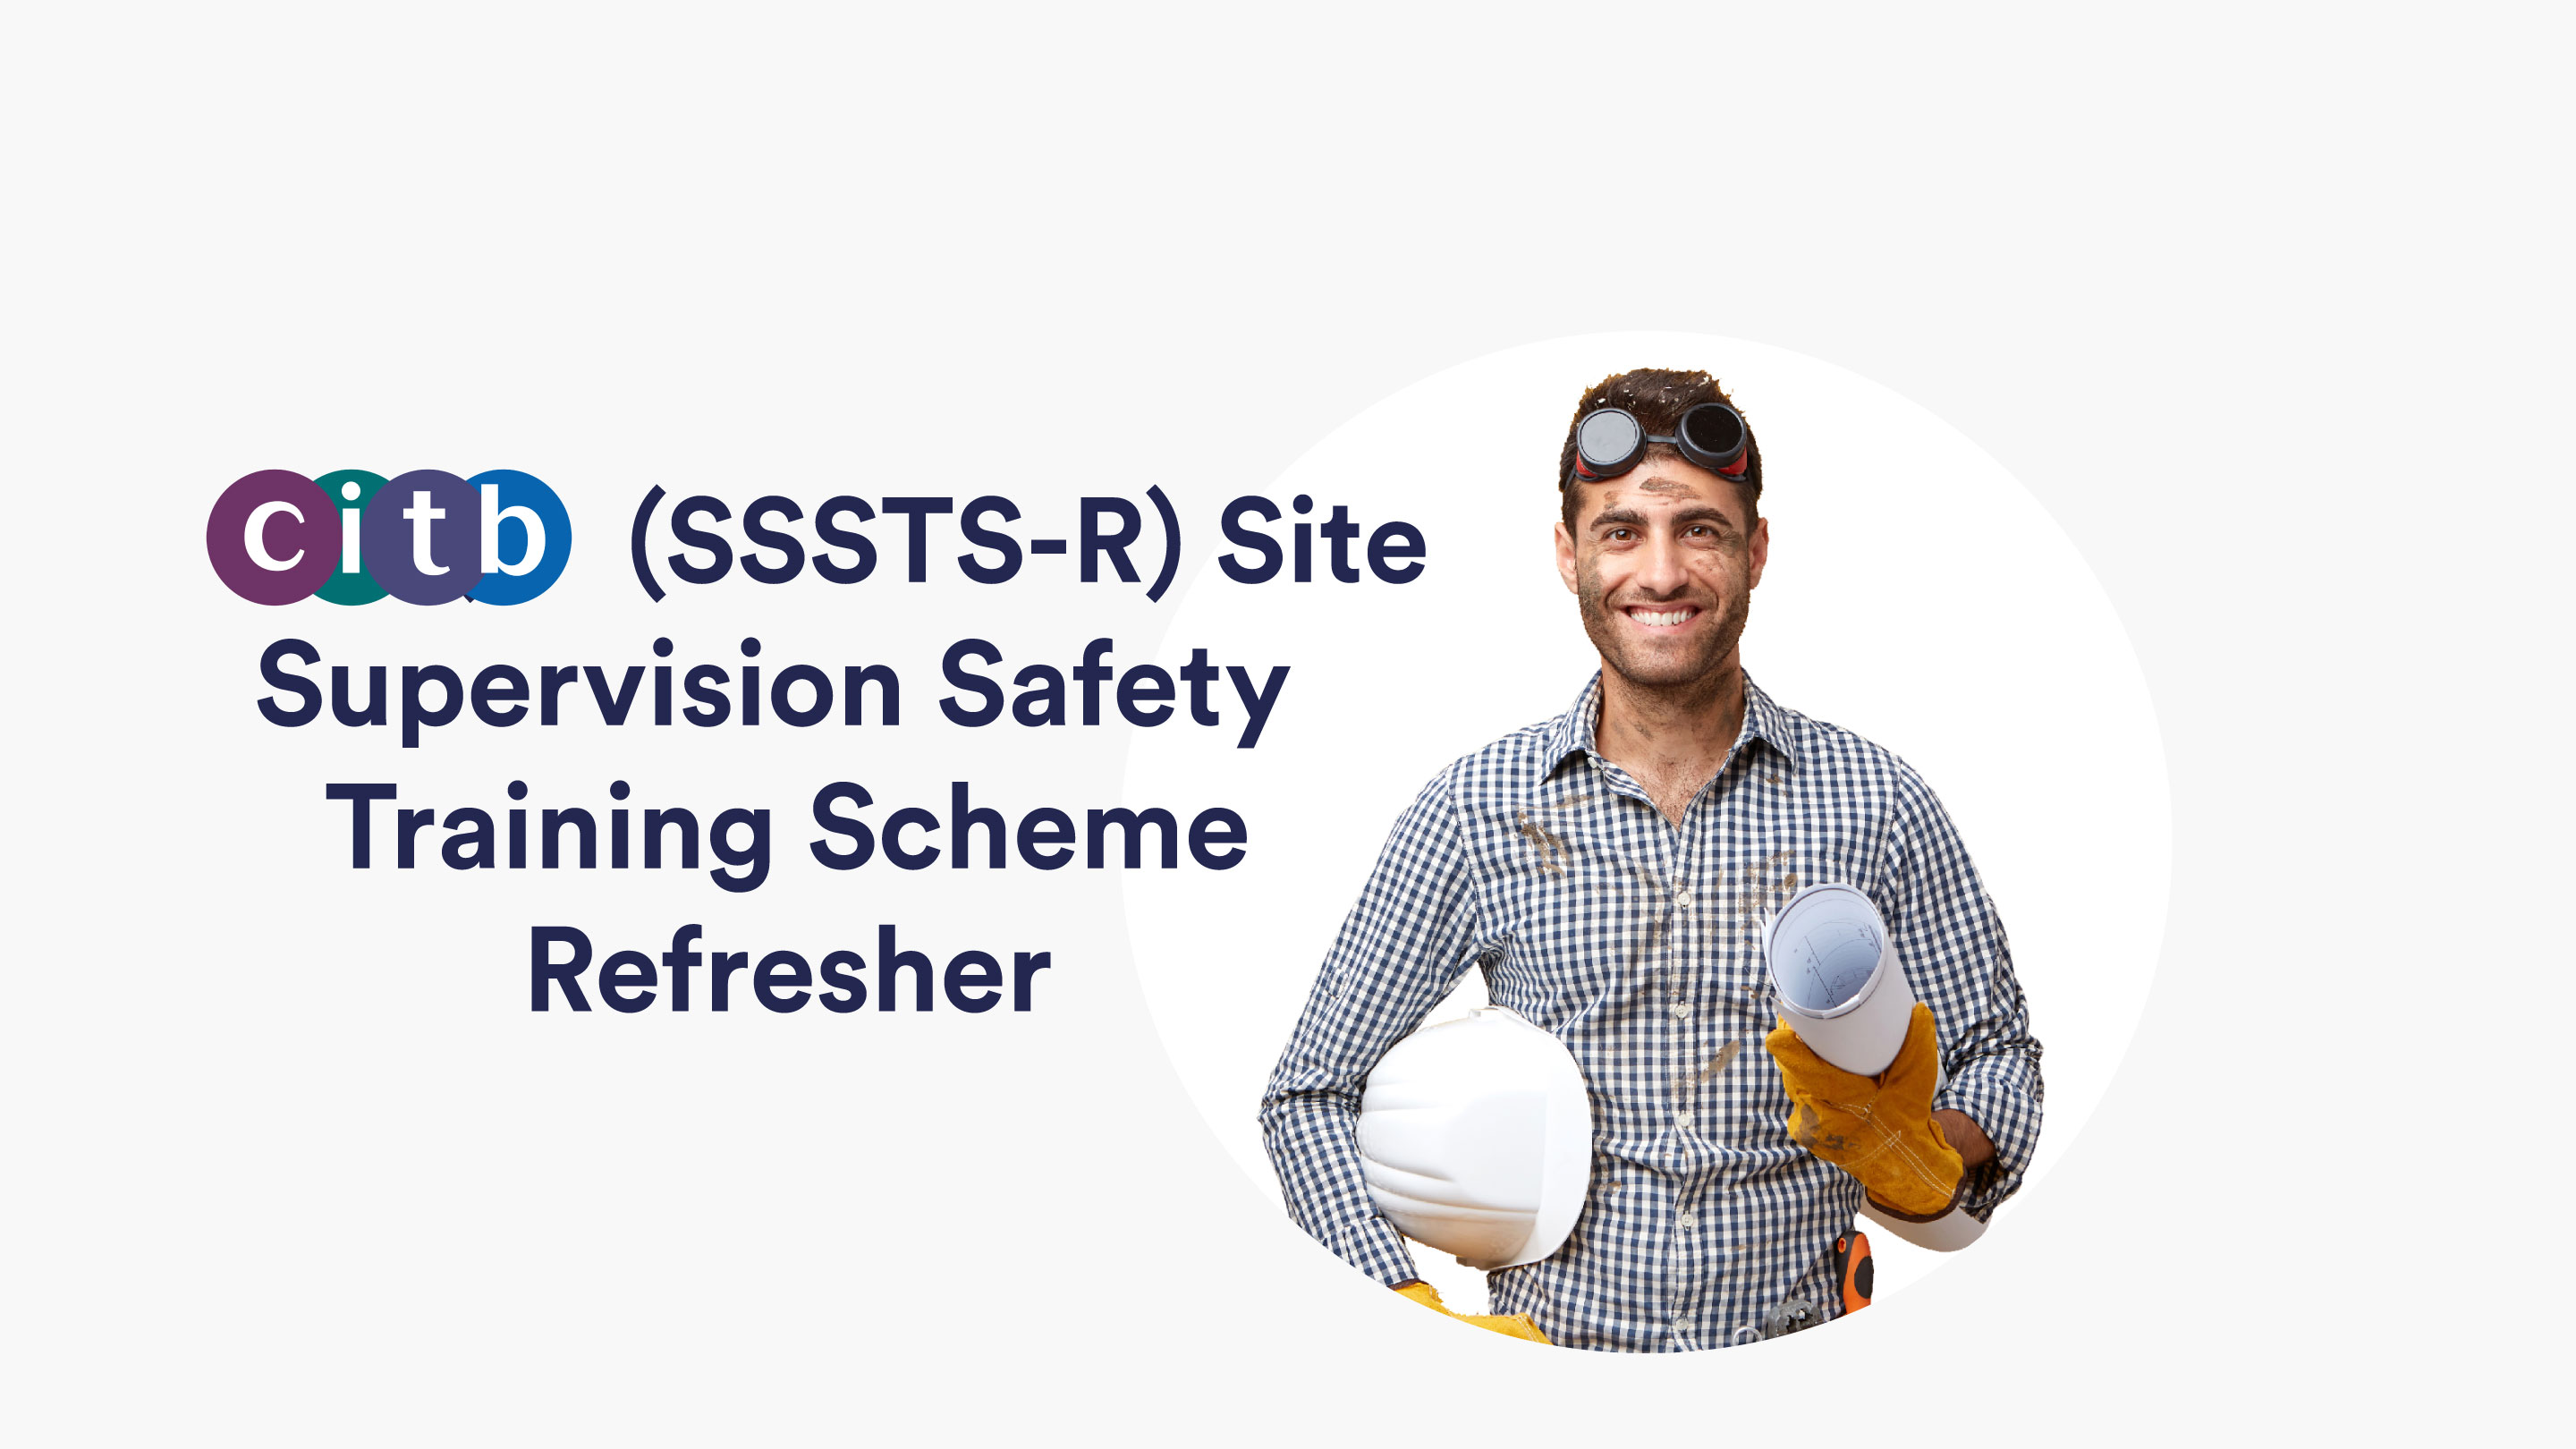 CITB_Site_Supervision_Safety_Training_Scheme_sssts_refresher_training_course_in_stoke_on_trent.jpg